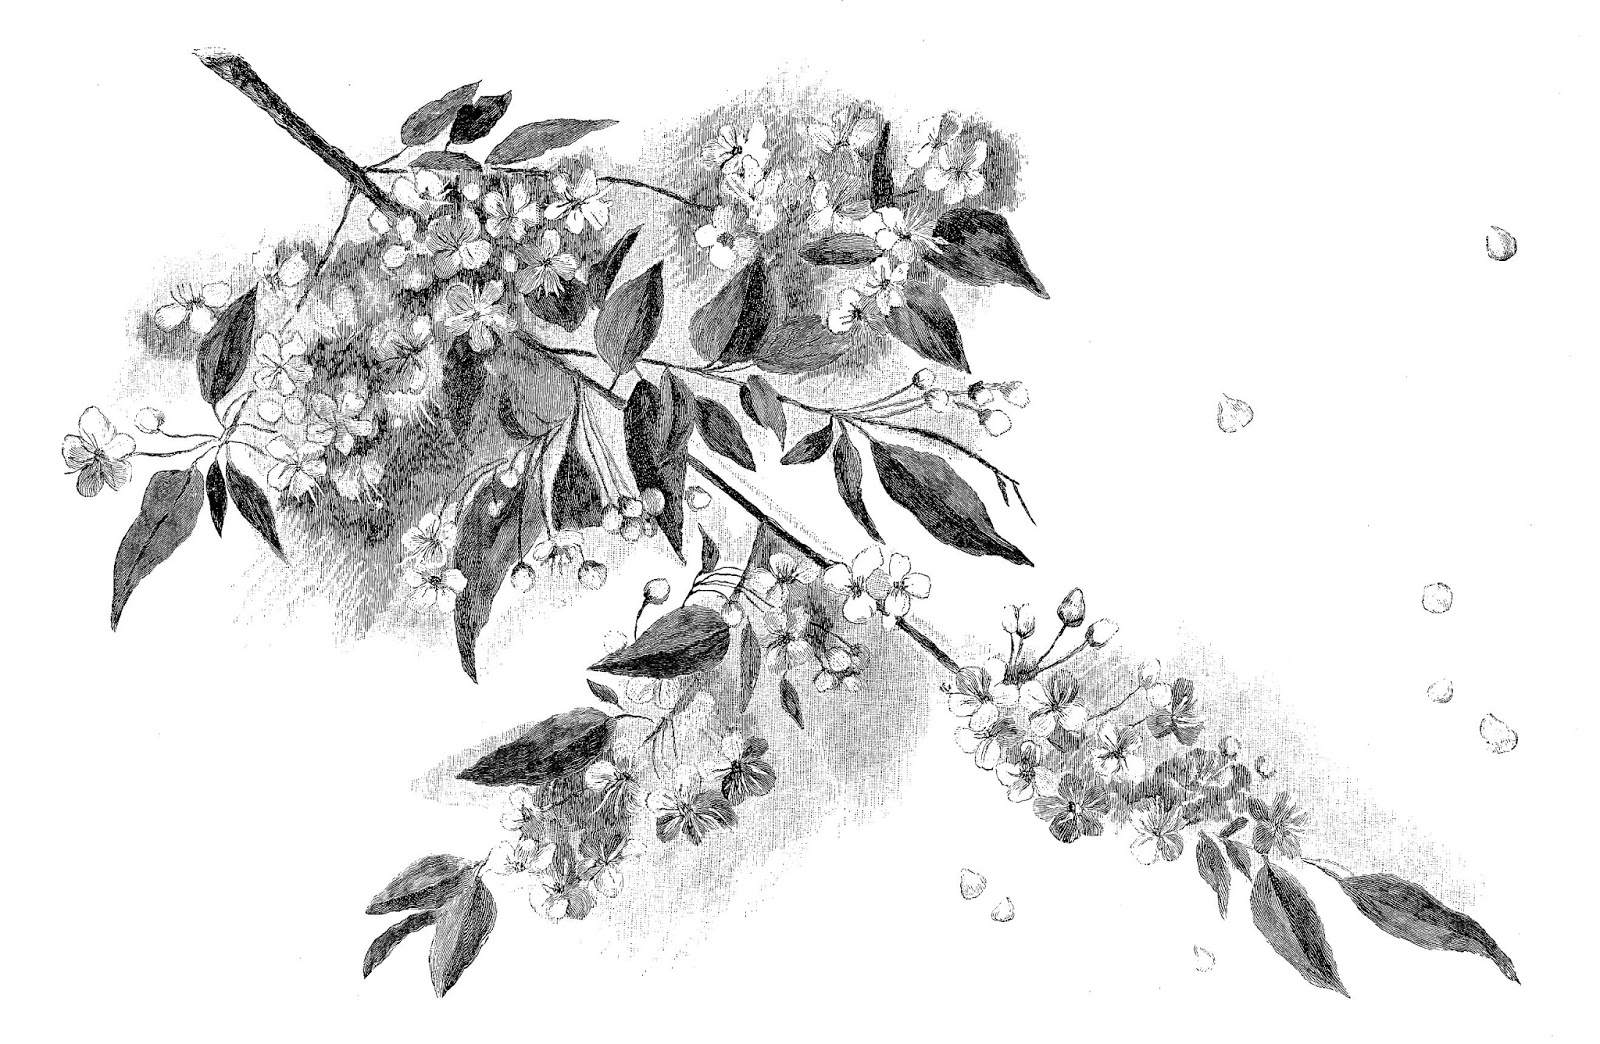 cherry blossom sketch japanese cherry blossom flower drawing free download on cherry blossom sketch